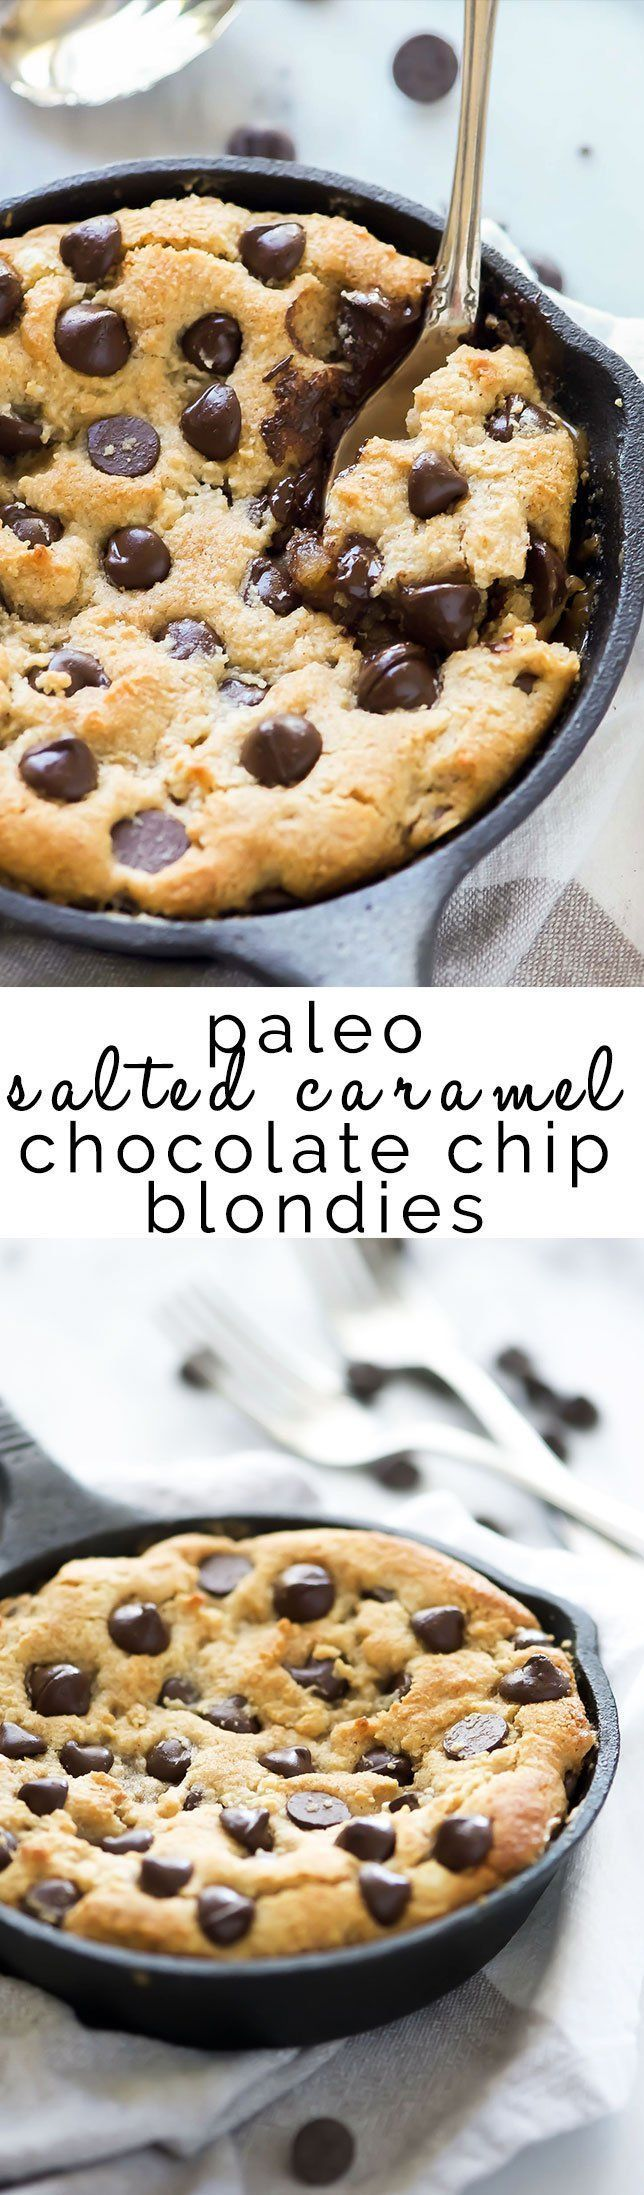 Deep Dish Salted Caramel Chocolate Chip Blondies is a secretly healthy, indulgent dessert! Made with wholesome ingredients and refined sugar free, no one will have troubles asking for seconds!